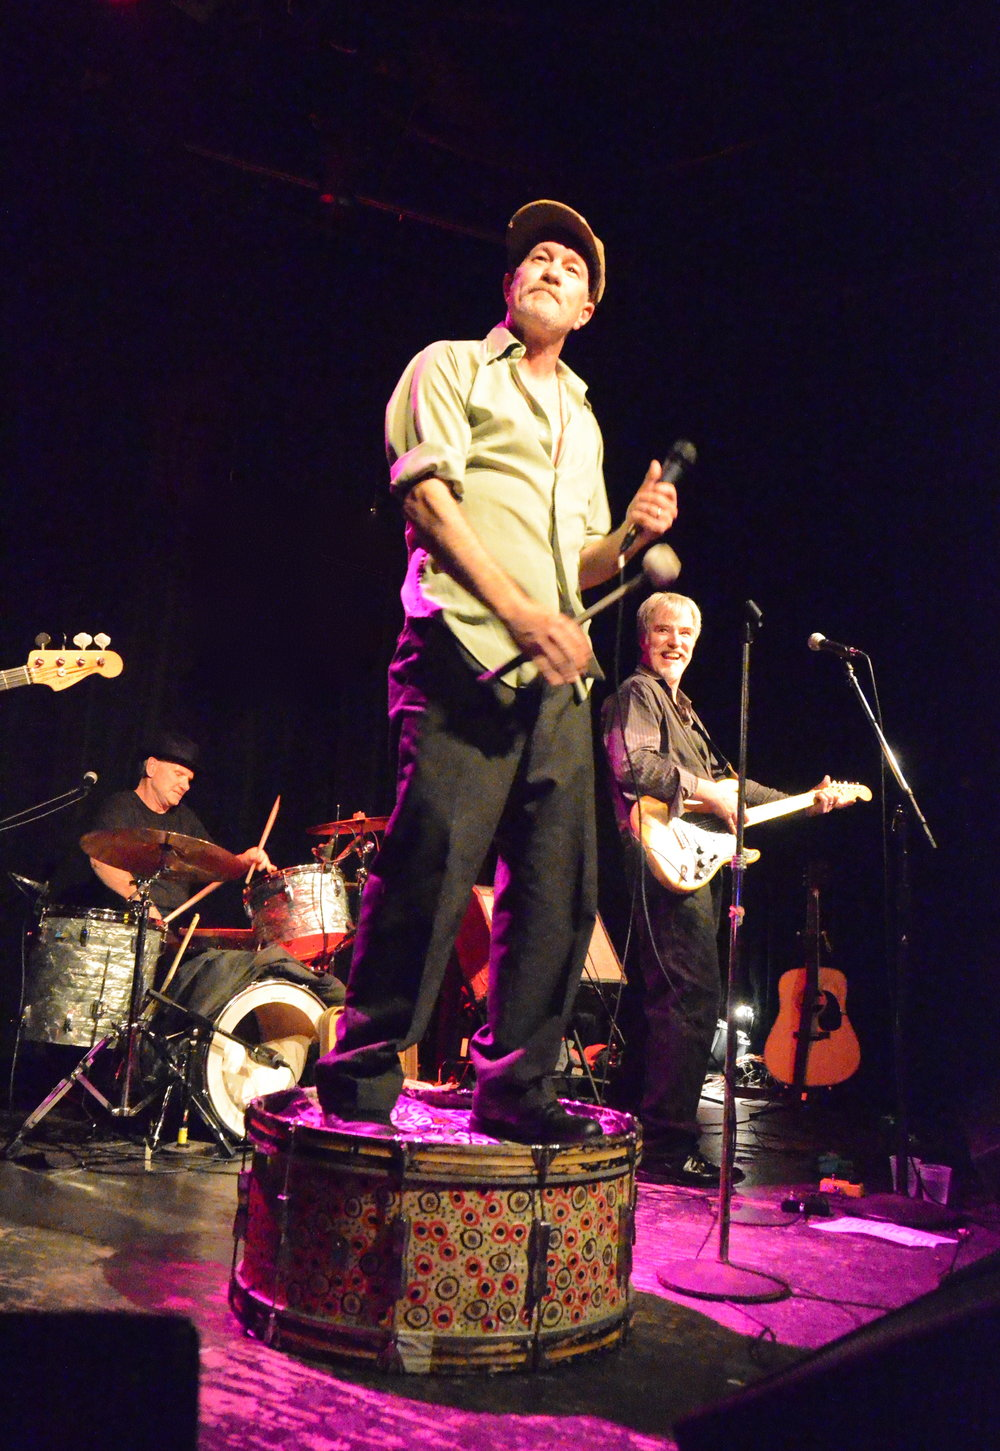 Michael Slattery (Shoulders) performing in 2013.